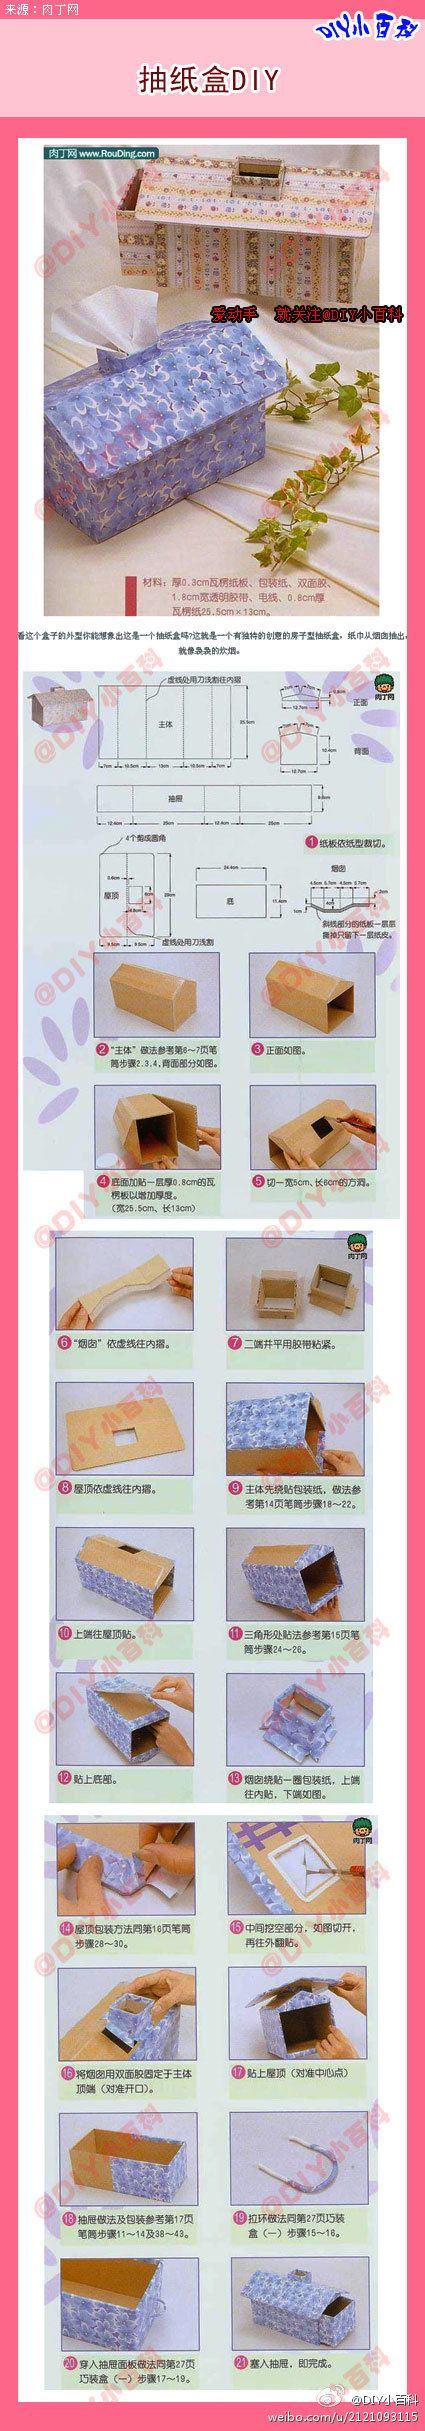 Tutorial to make a 'house' kleenex box, would be cute with wood look paper to make a log cabin kleenex box via duitang.com